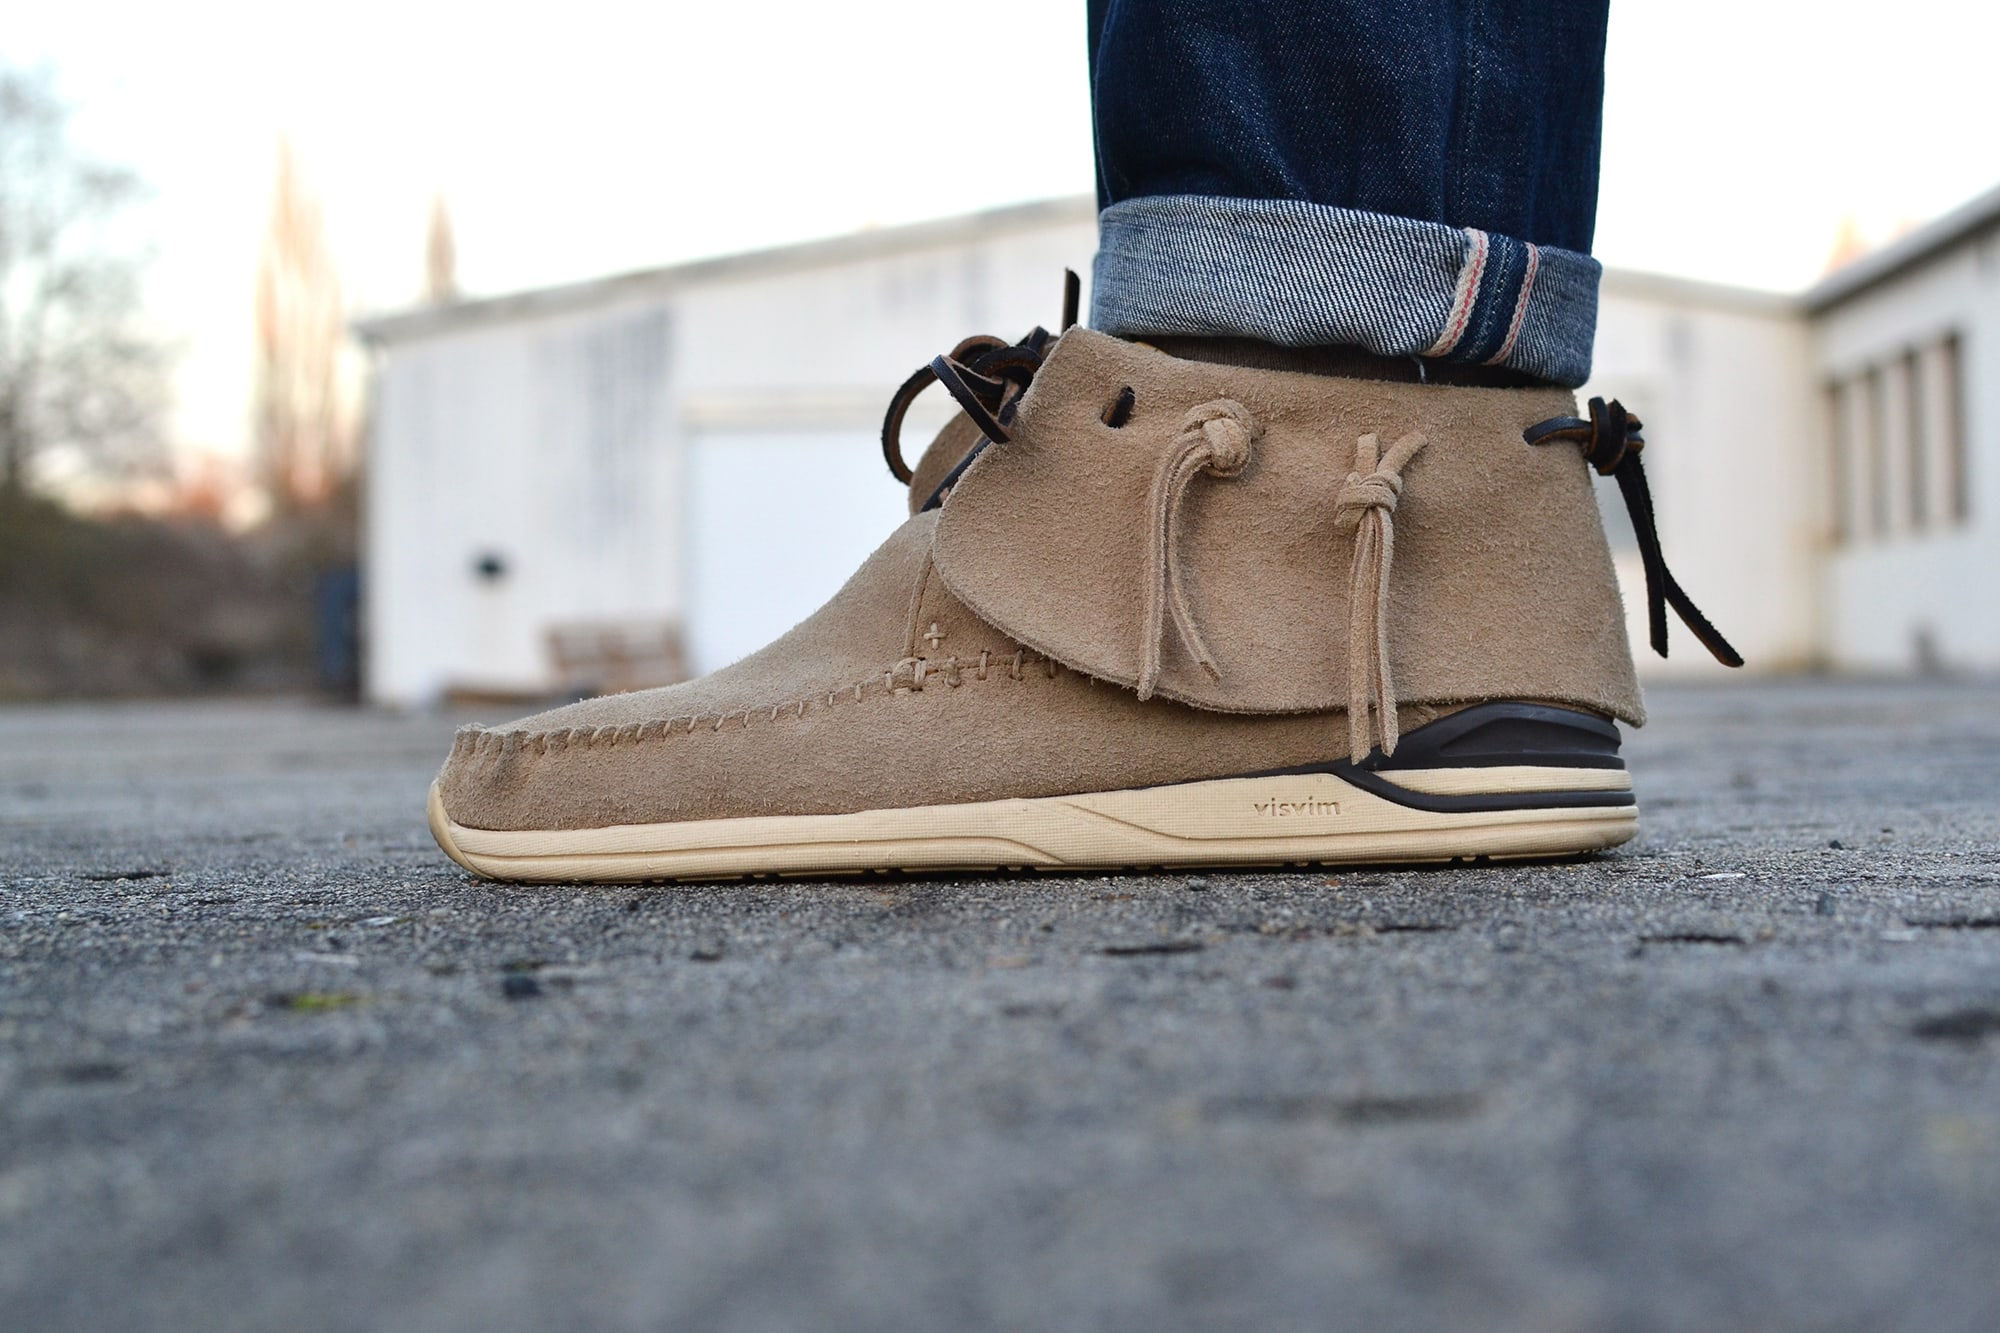 Jeans A.P.C Rescue Custom tapered with sneakers Visvim FBT lhamo color sand